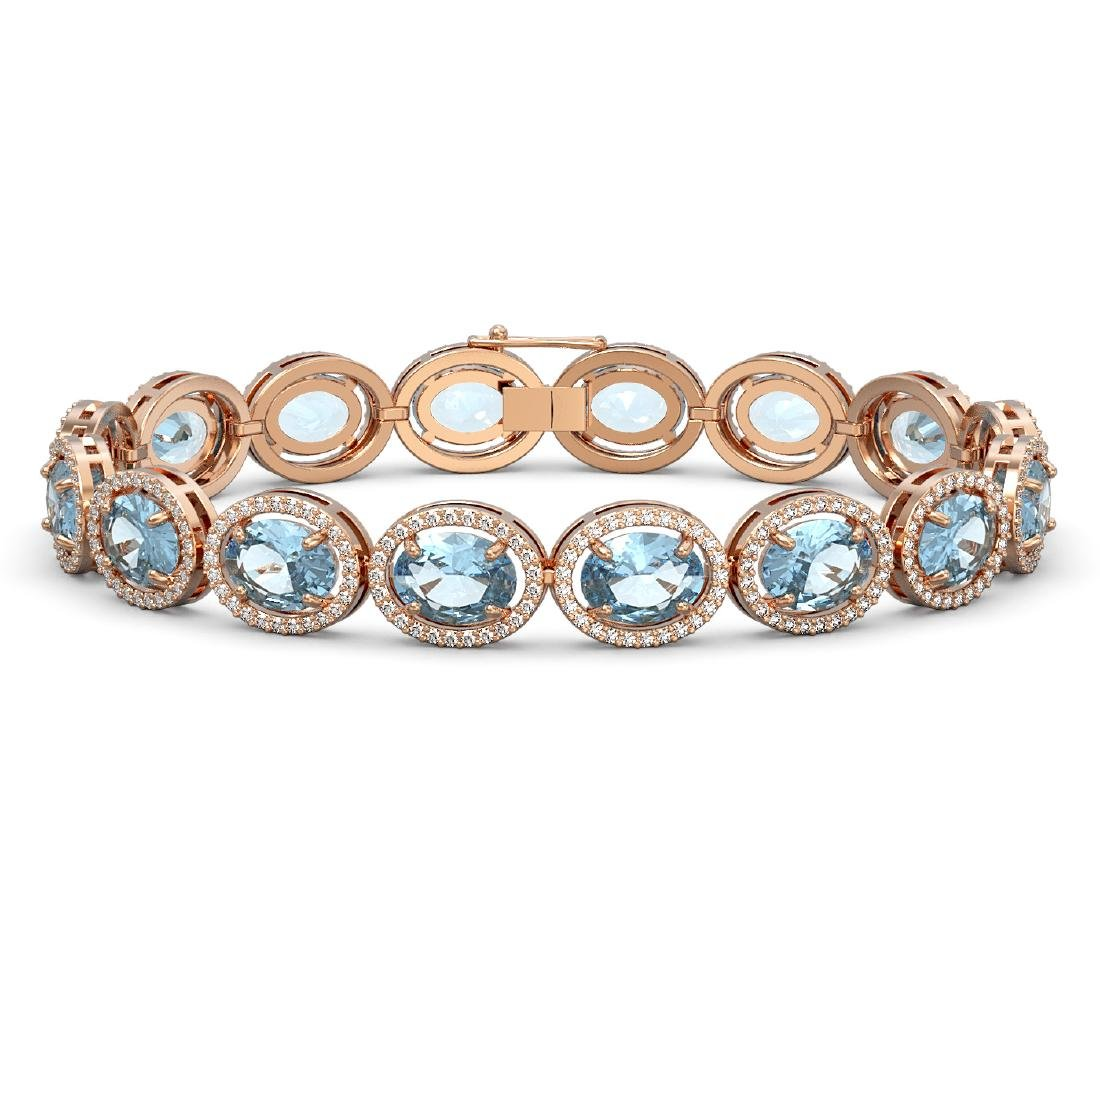 23.44 CTW Aquamarine & Diamond Halo Bracelet 10K Rose